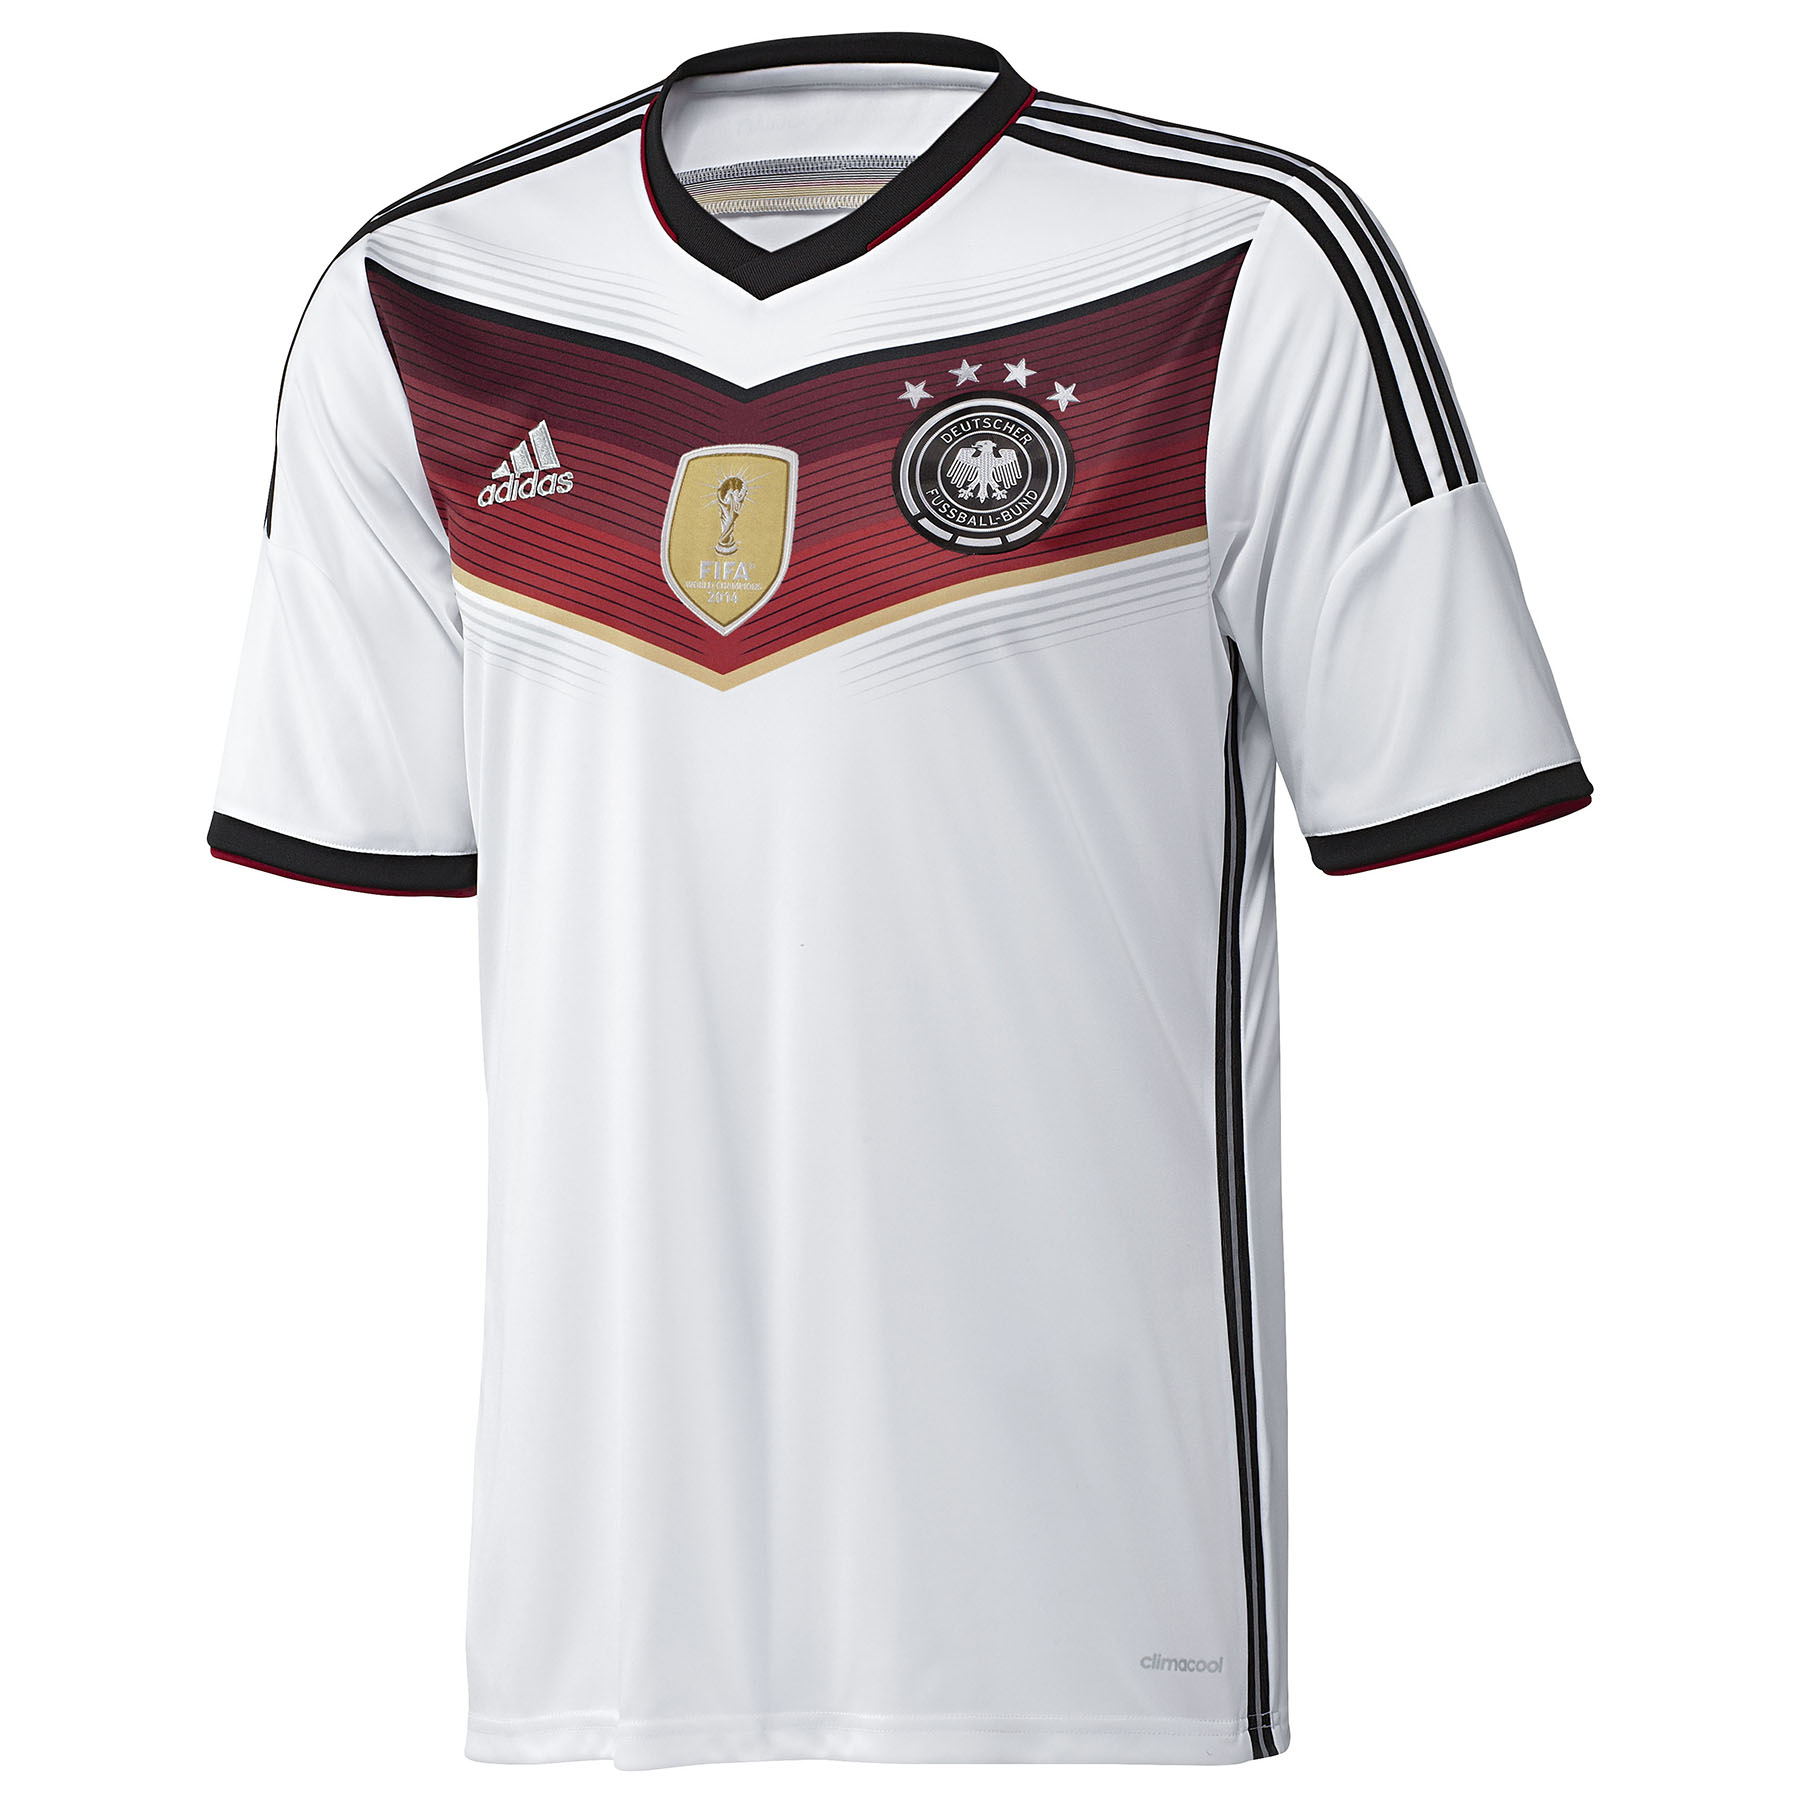 Germany Home Shirt 2014 - Four Stars - Kids White